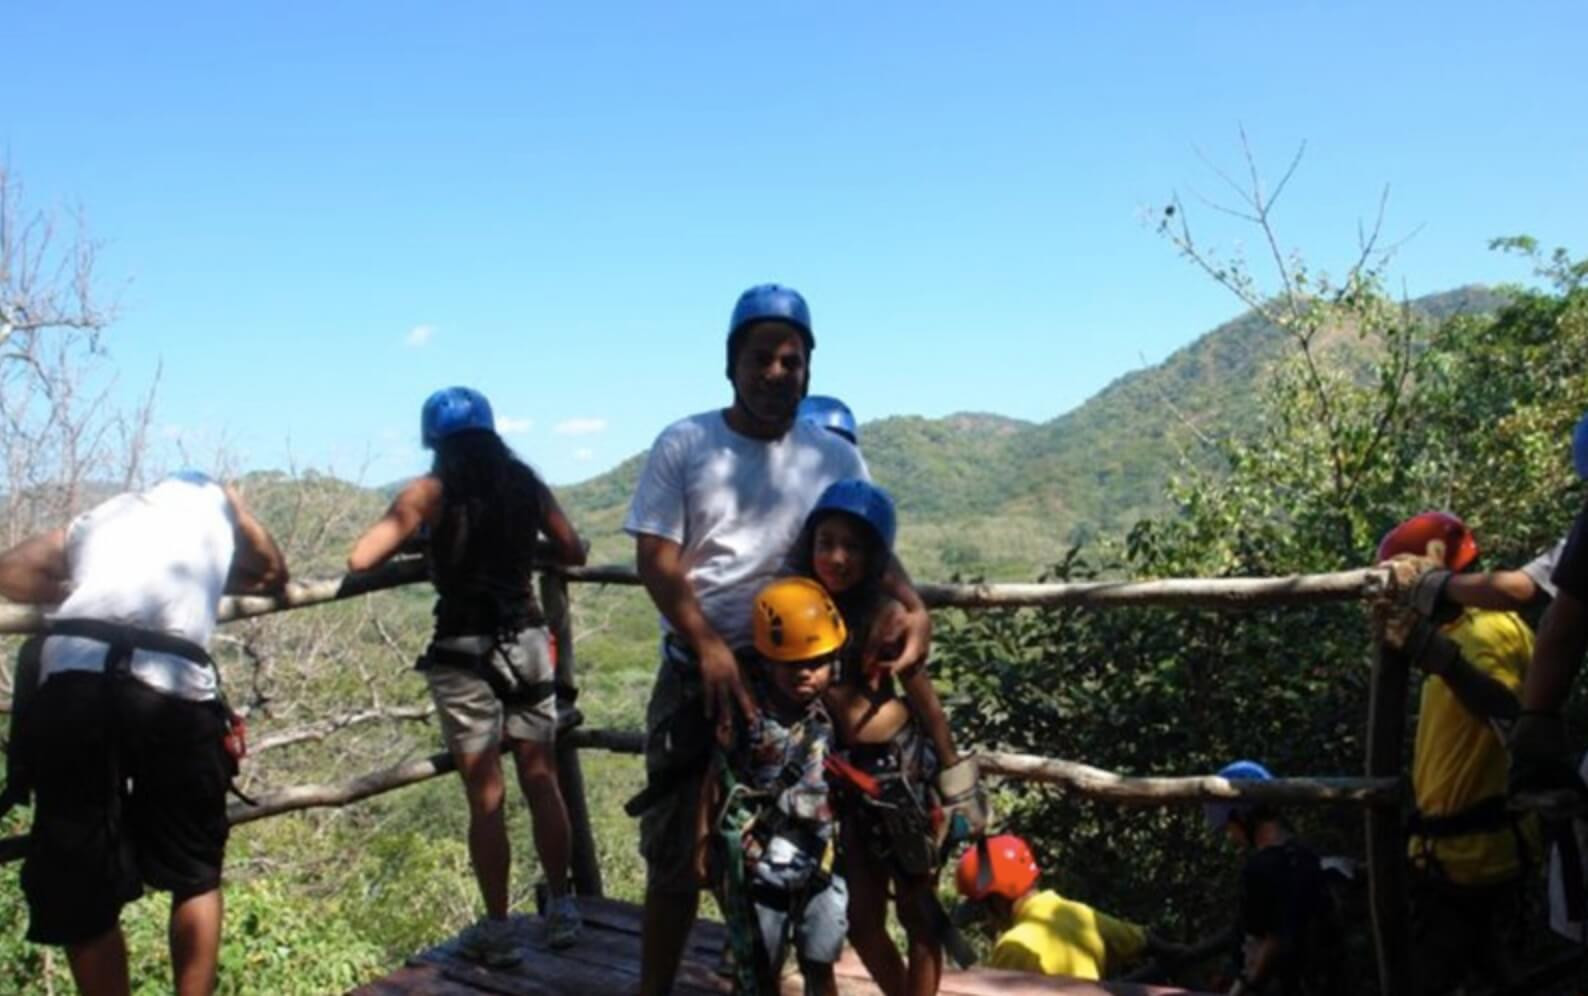 Tamarindo Guanacaste Costa Rica zipline canopy tour group enjoying the views